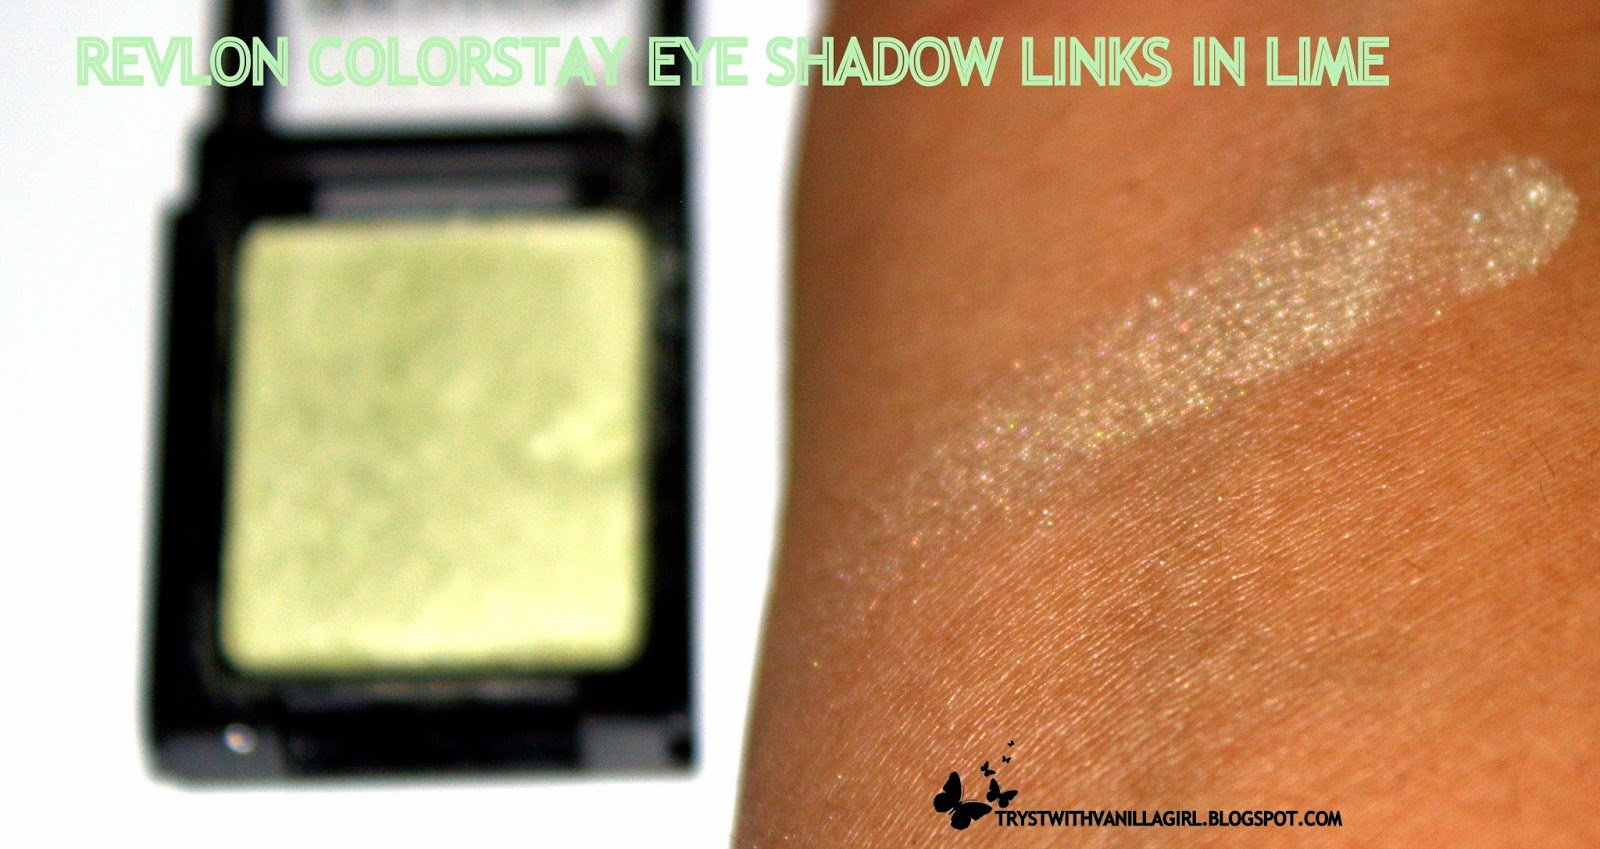 Revlon's Colorstay Shadowlinks,LIME,SWATCHES,REVIEW,INDIAN BLOG,BEAUTY,MAKEUP